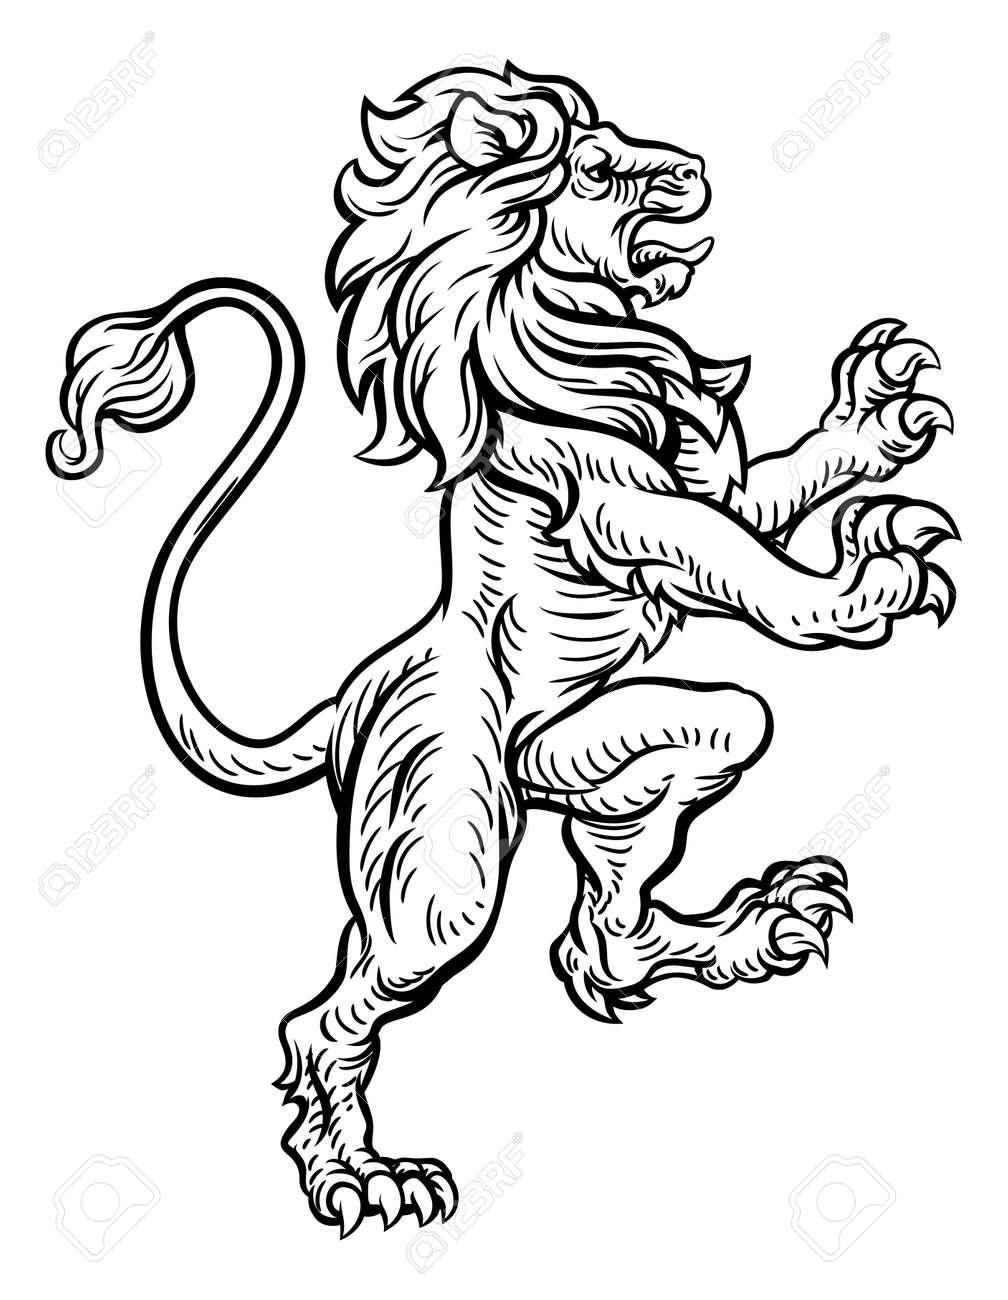 lion heraldic style drawing royalty free cliparts vectors and rh 123rf com heraldic clip art of bird heraldic clip art of bird